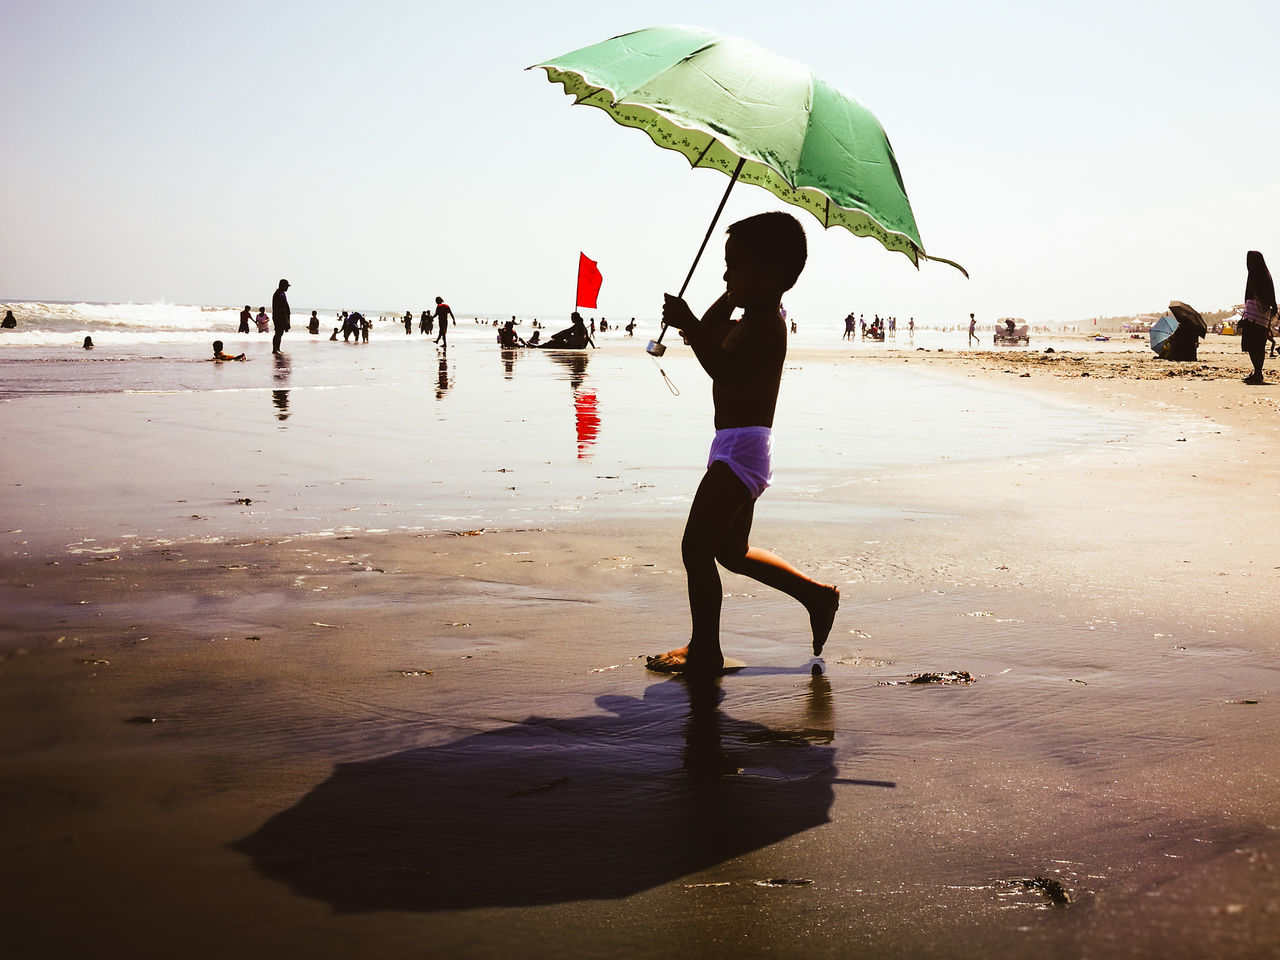 Live For The Story Mobilephotography Eyeem Philippines Mobile_photographer Huawei P9 Leica The Street Photographer - 2017 EyeEm Awards Beach People Wet Vacations Summer Childhood Eye4photography  Check This Out Leisure Activity Enjoying The Sun HuaweiP9Photography Huawei Shots